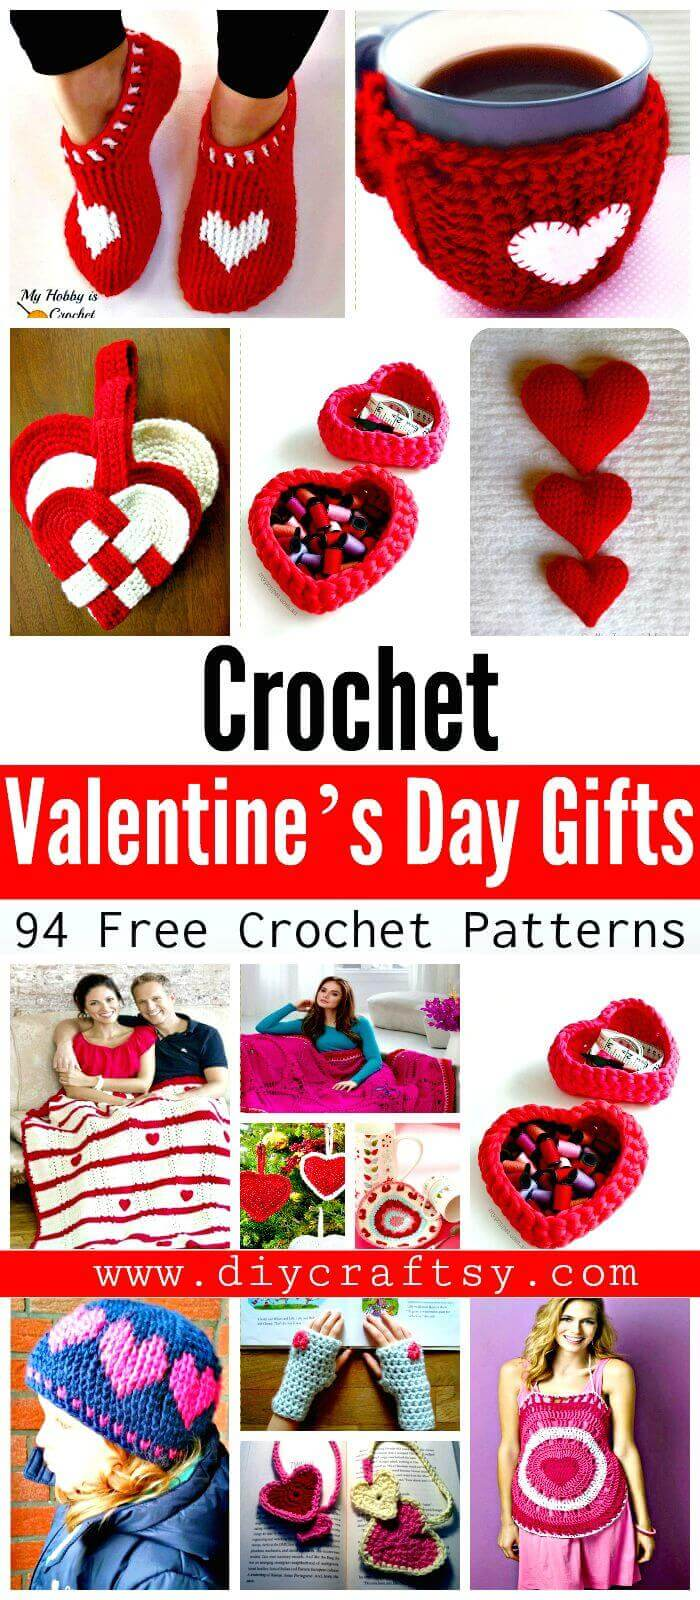 Free Crochet Patterns for Valentine's Day Gifts - DIY Crafts